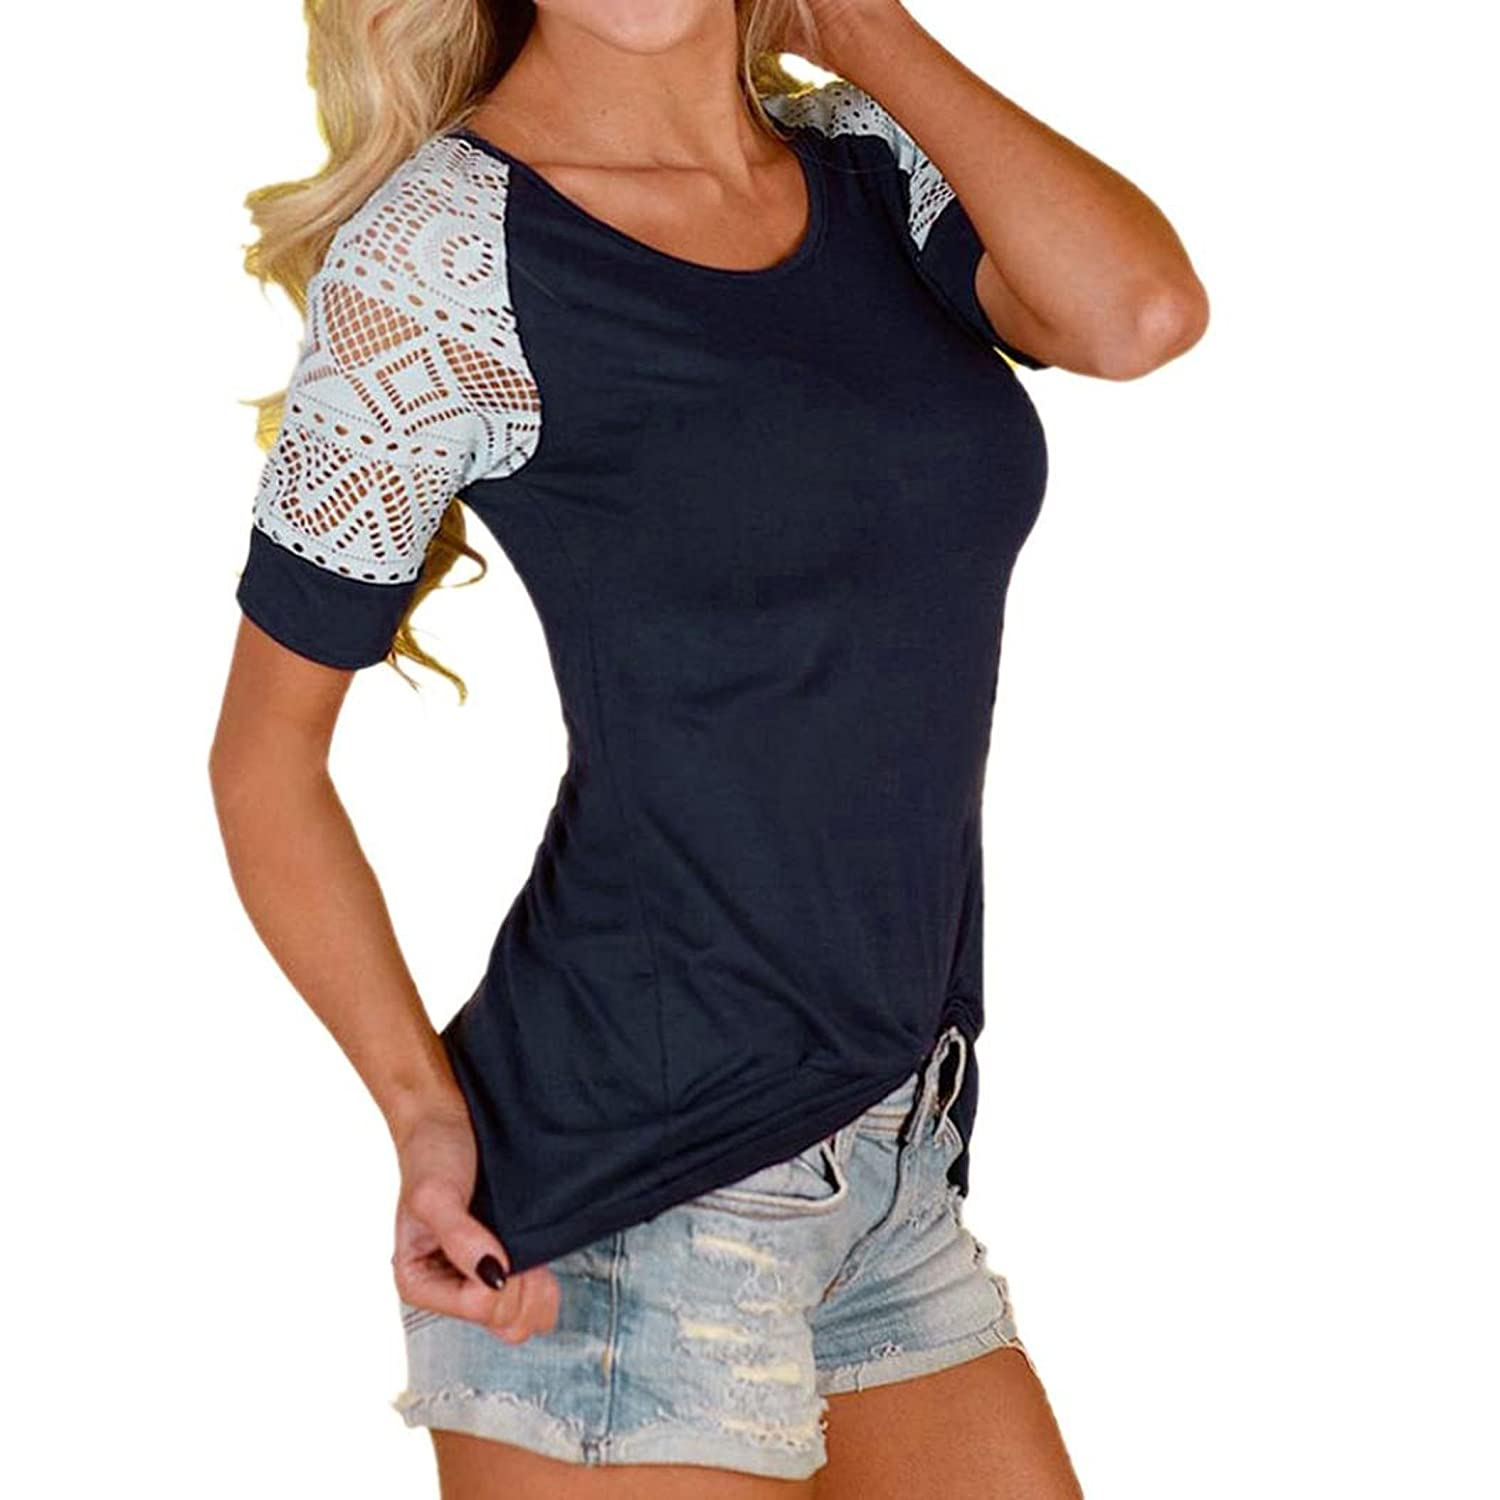 ✽Anglin✽ Women Summer Casual Lace T-Shirt (M)